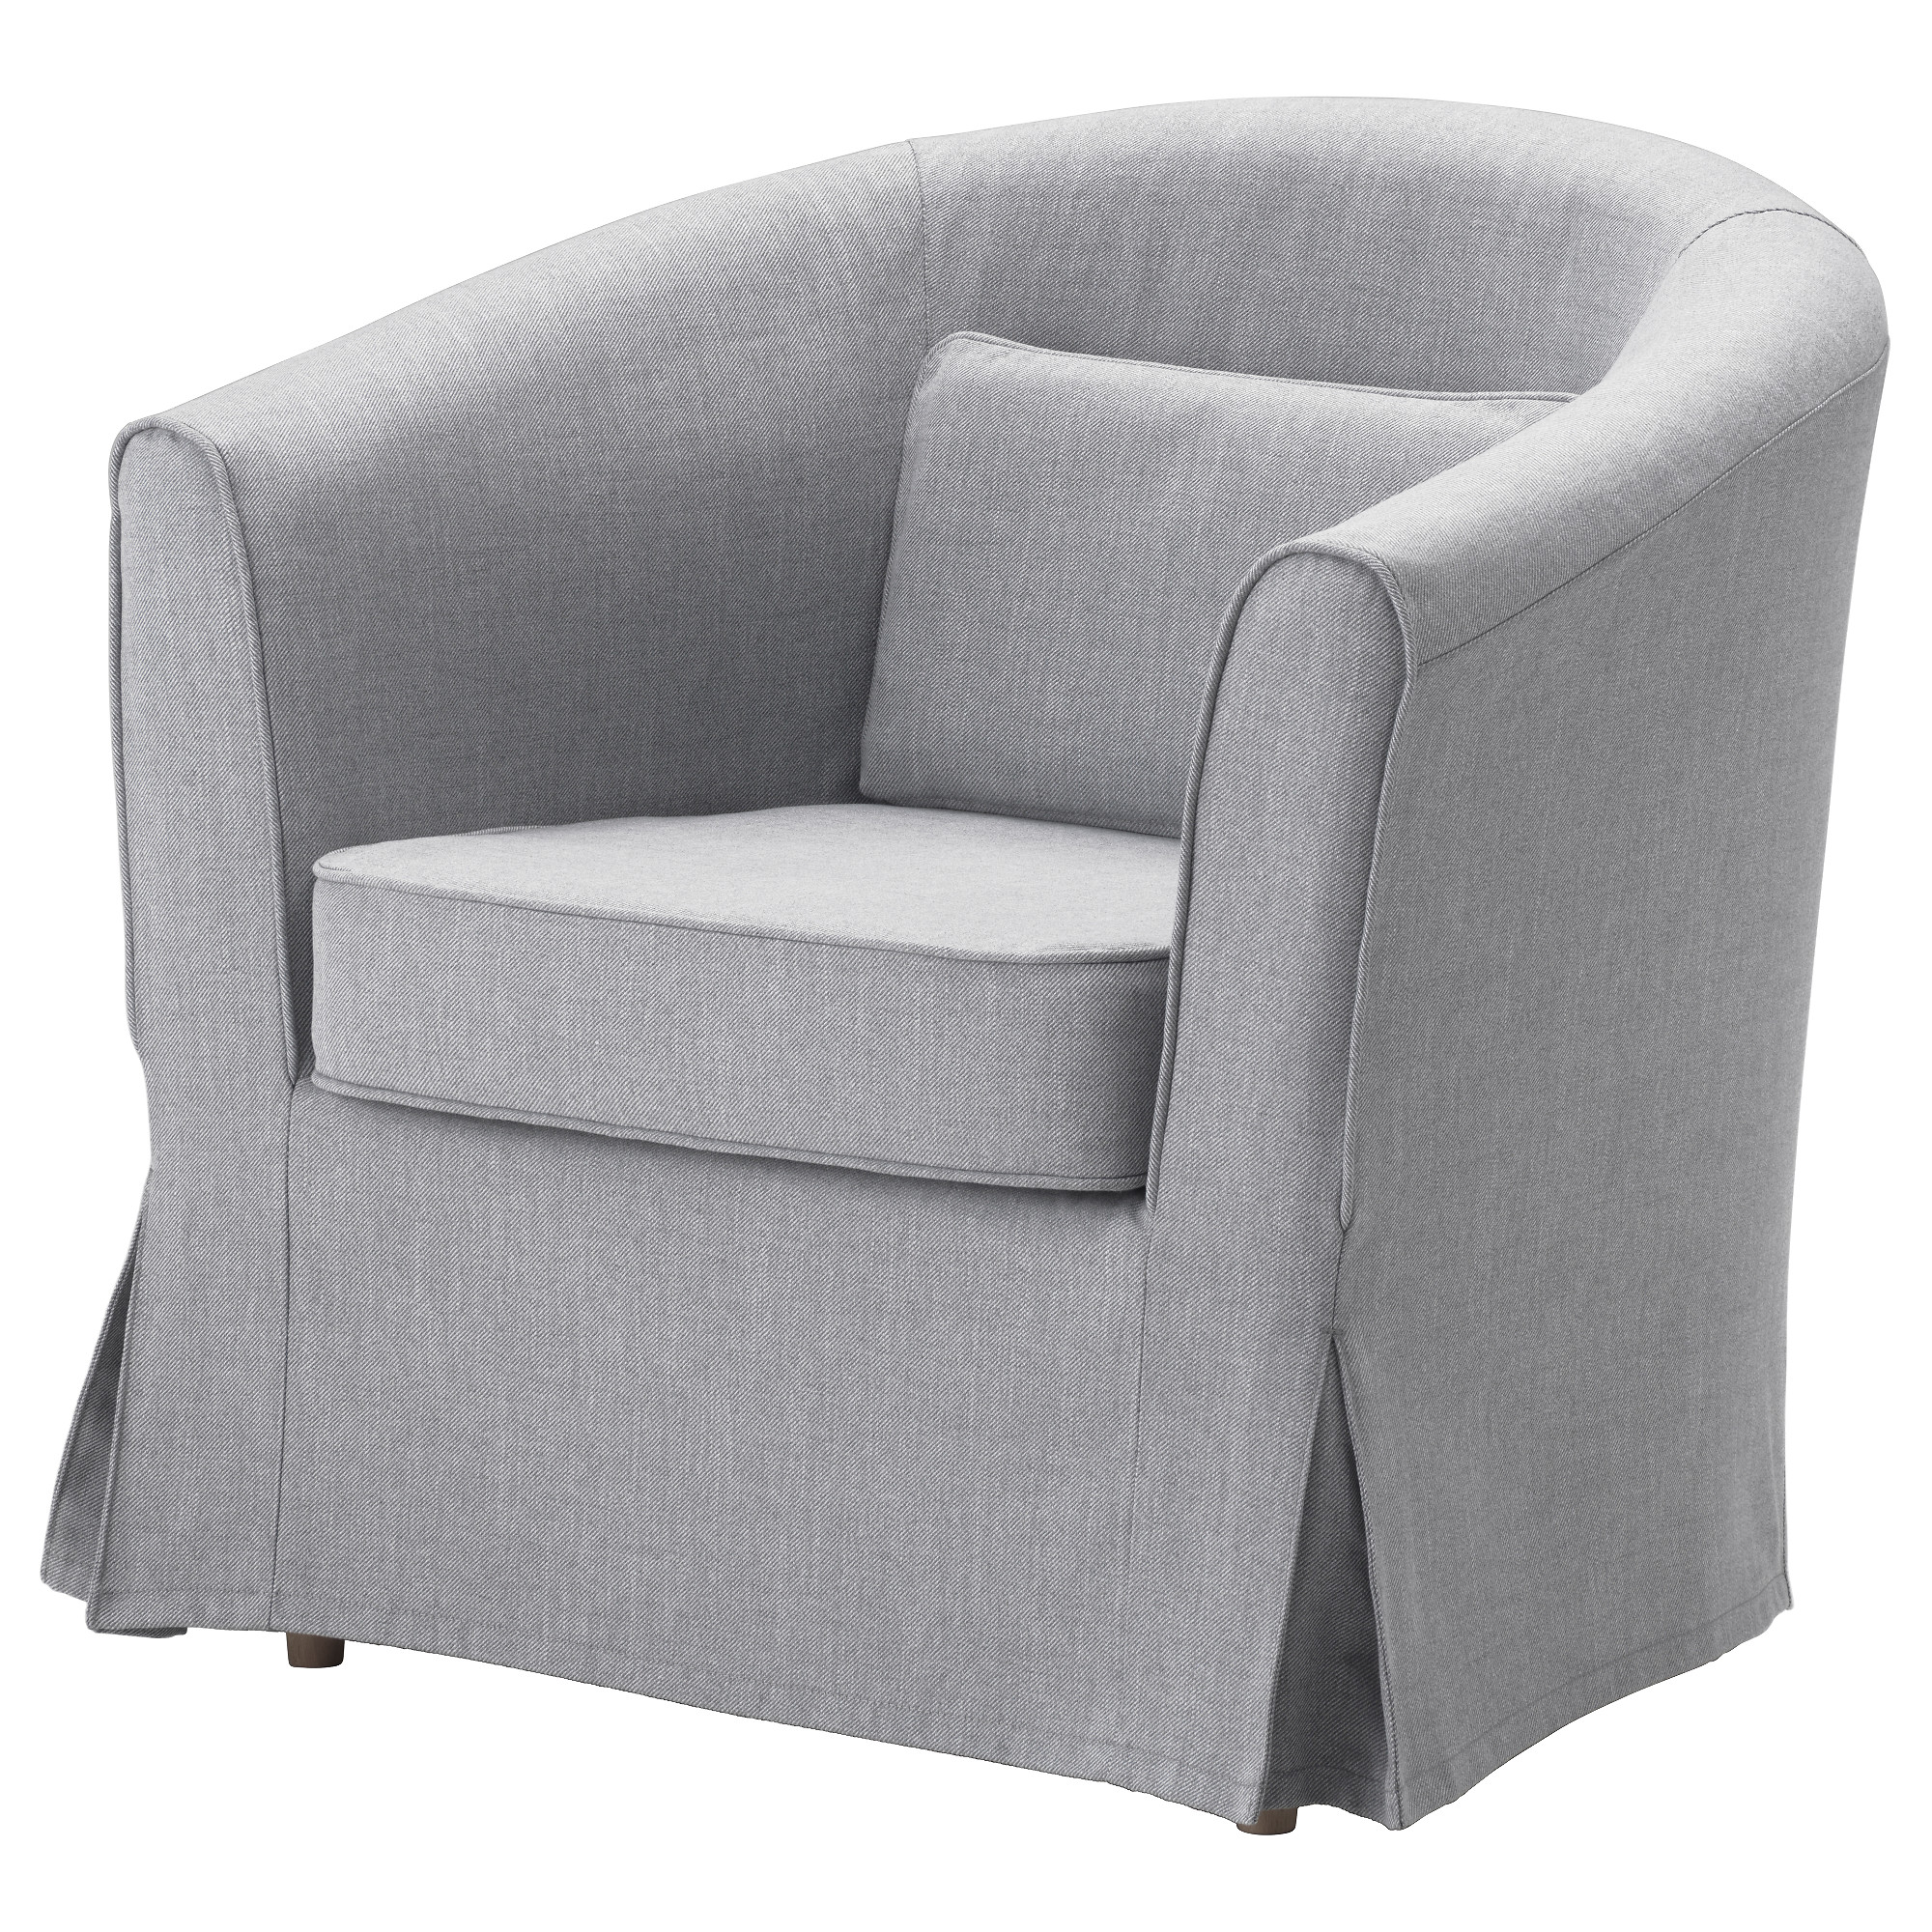 TULLSTA Chair Cover   Nordvalla Medium Gray   IKEA